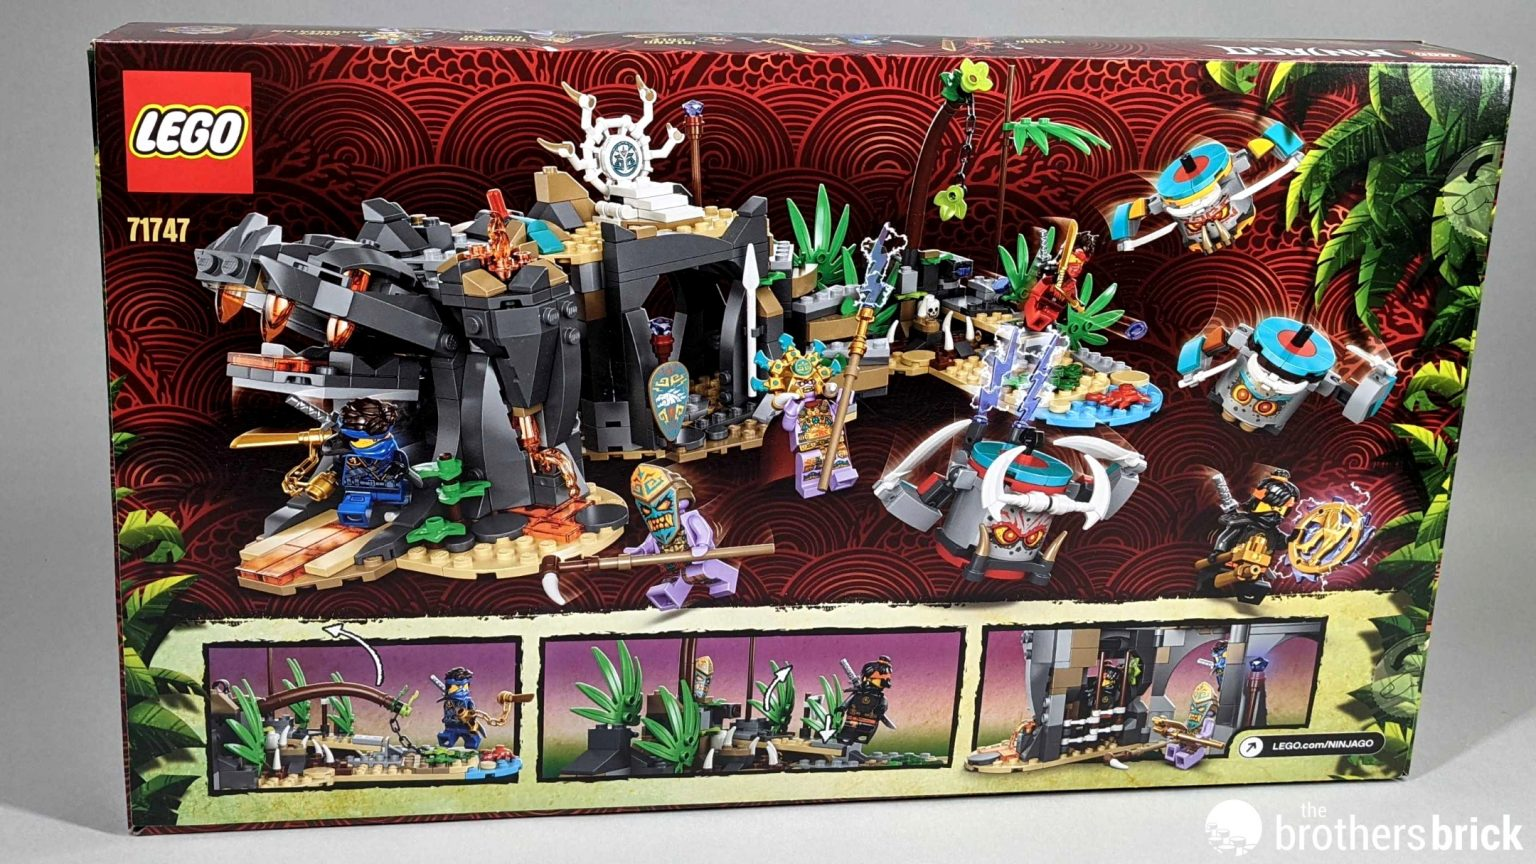 LEGO Ninjago 71747 The Keepers' Village - TBB Review - 2 ...